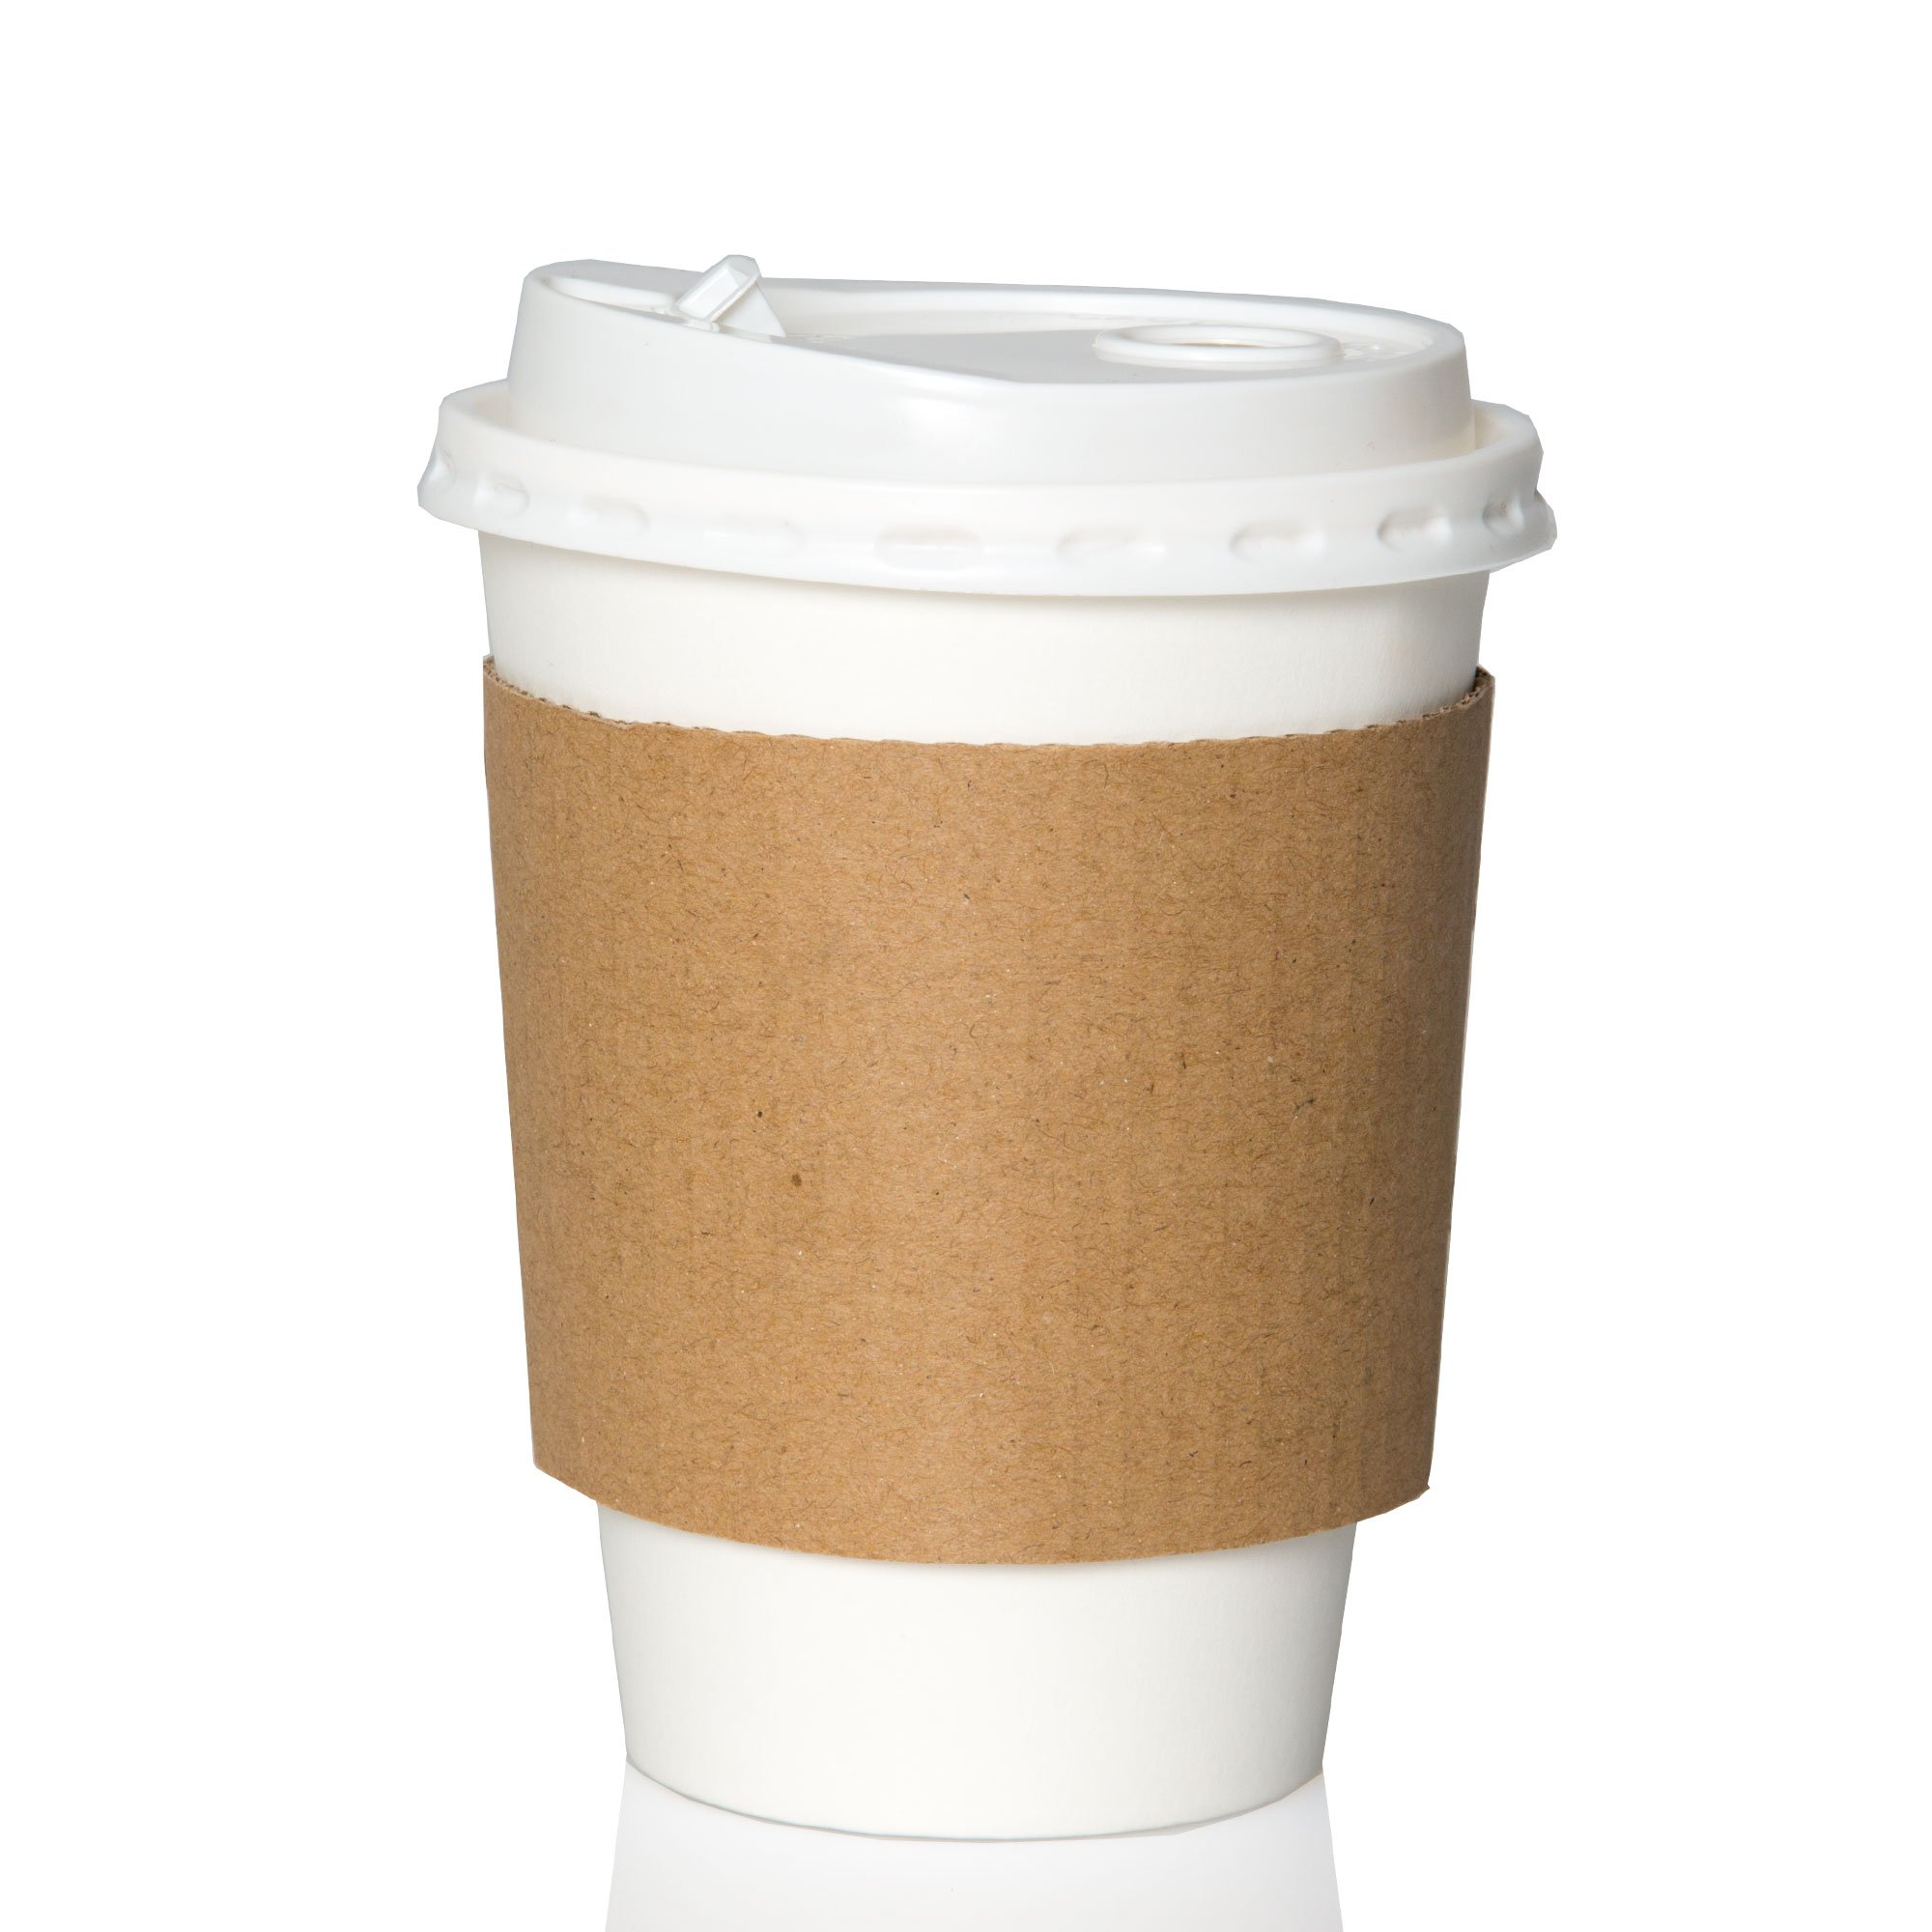 50 Pack 12 Oz To Go Coffee Cups With Sleeves Lids Disposable Recyclab